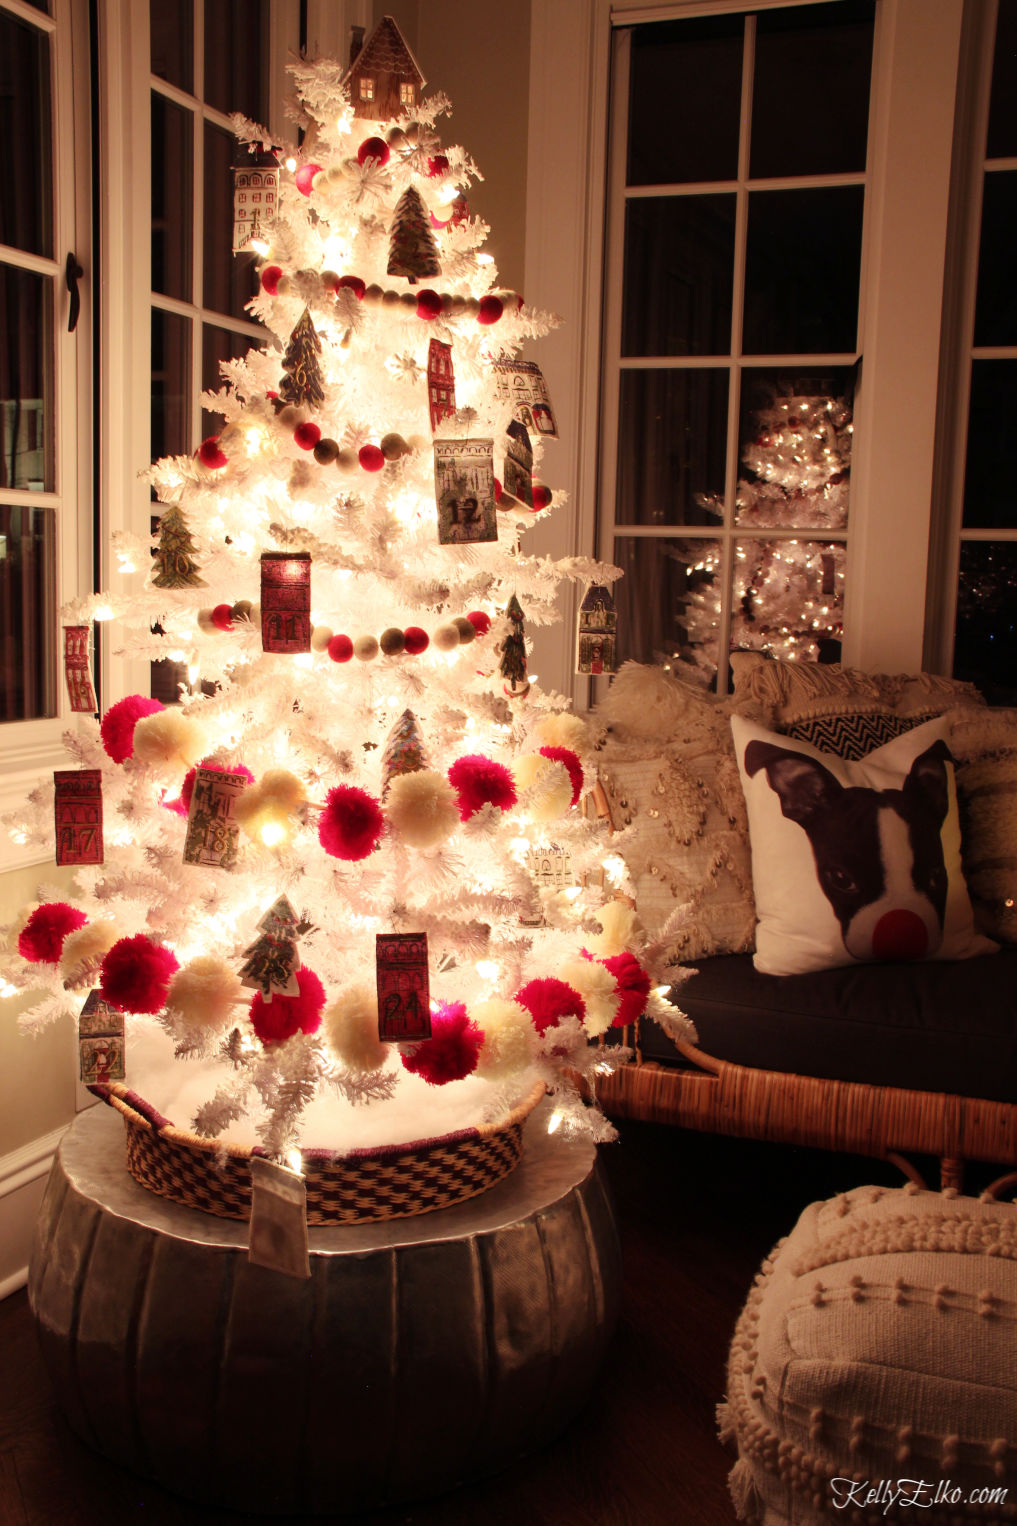 Glowing white Christmas tree with whimsical red pom pom garland kellyelko.com #christmasdecor #christmastree #whitechristmastree #whitetree #adventtree #adventcalendar #farmhousechristmas #whimsicalchristmas #farmhousechristmas #farmhousedecor #kellyelko